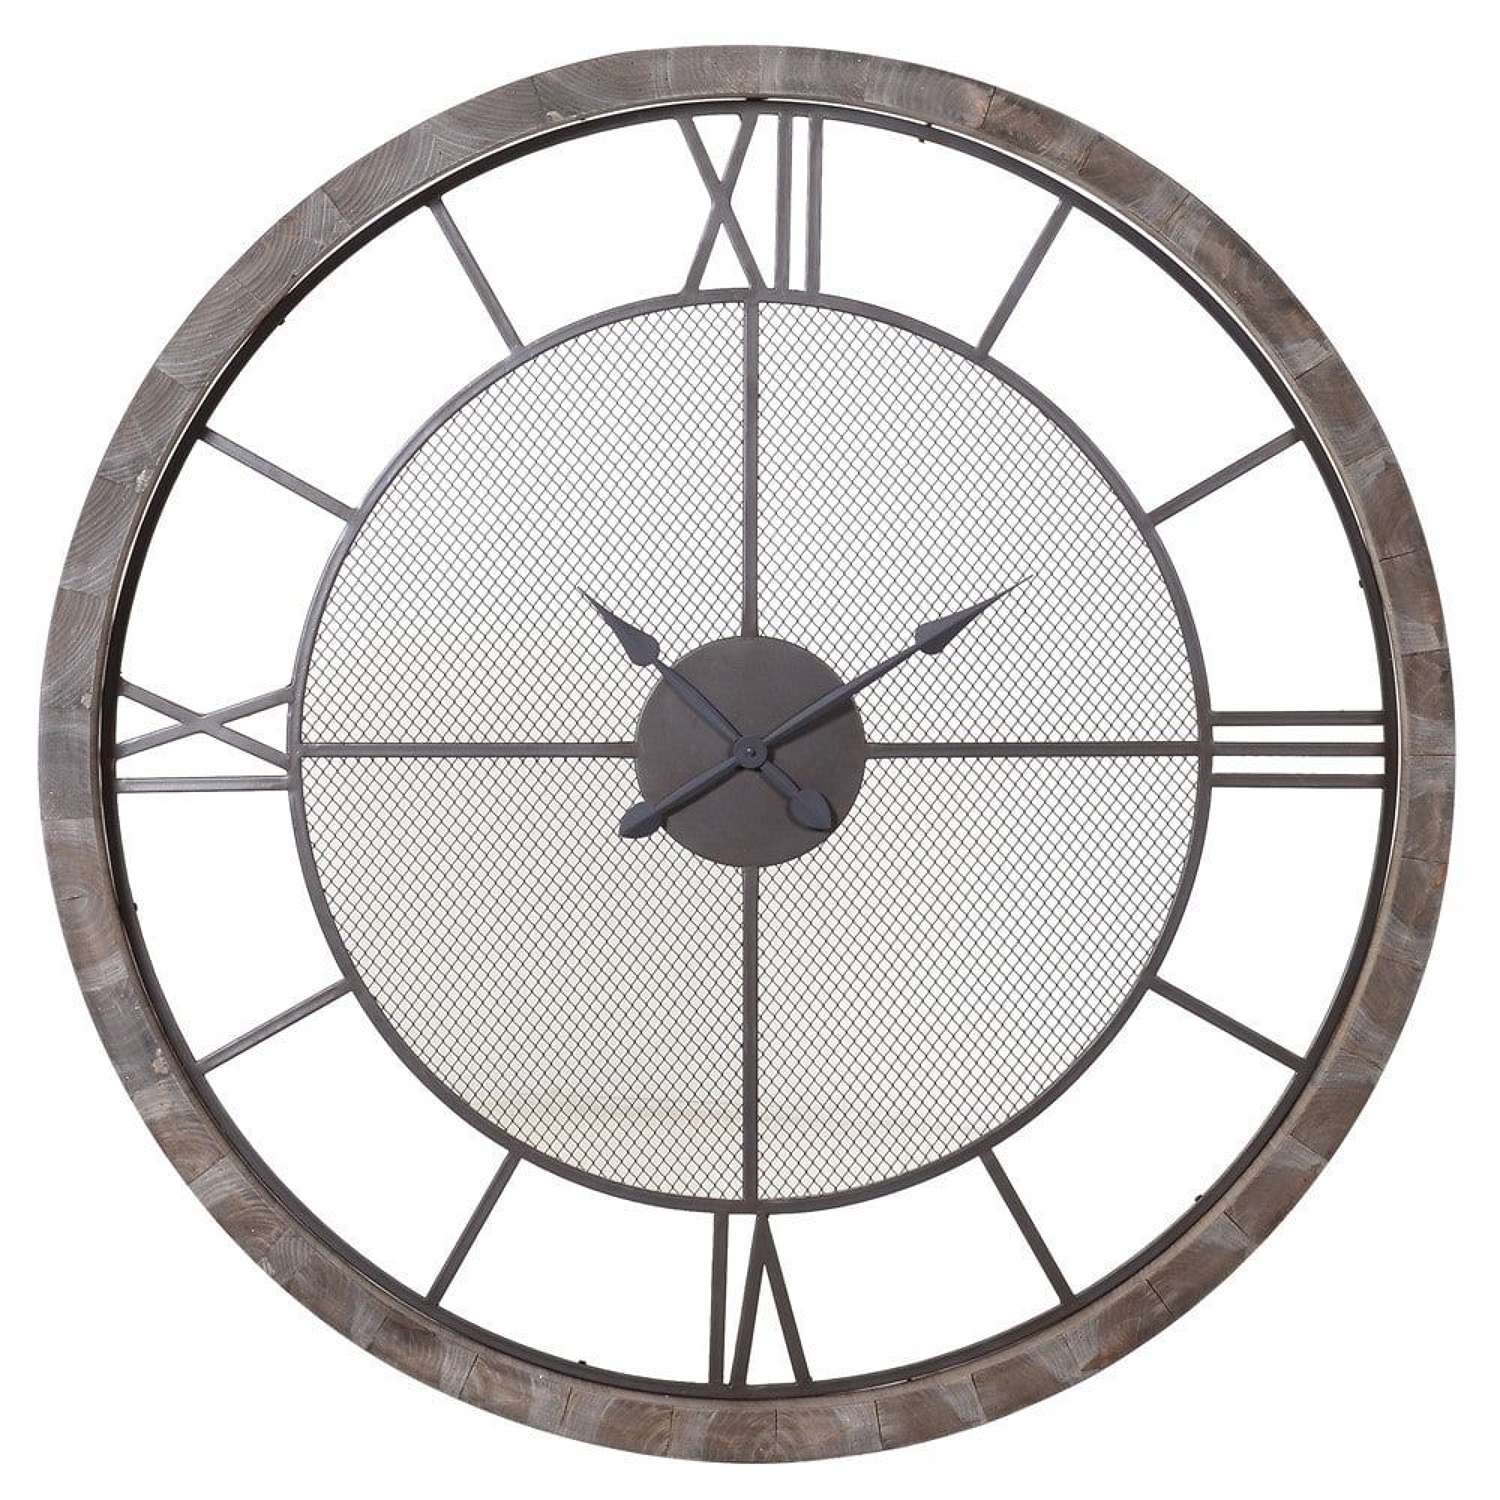 Very Large Wooden Framed Wall Clock with Metal Detail